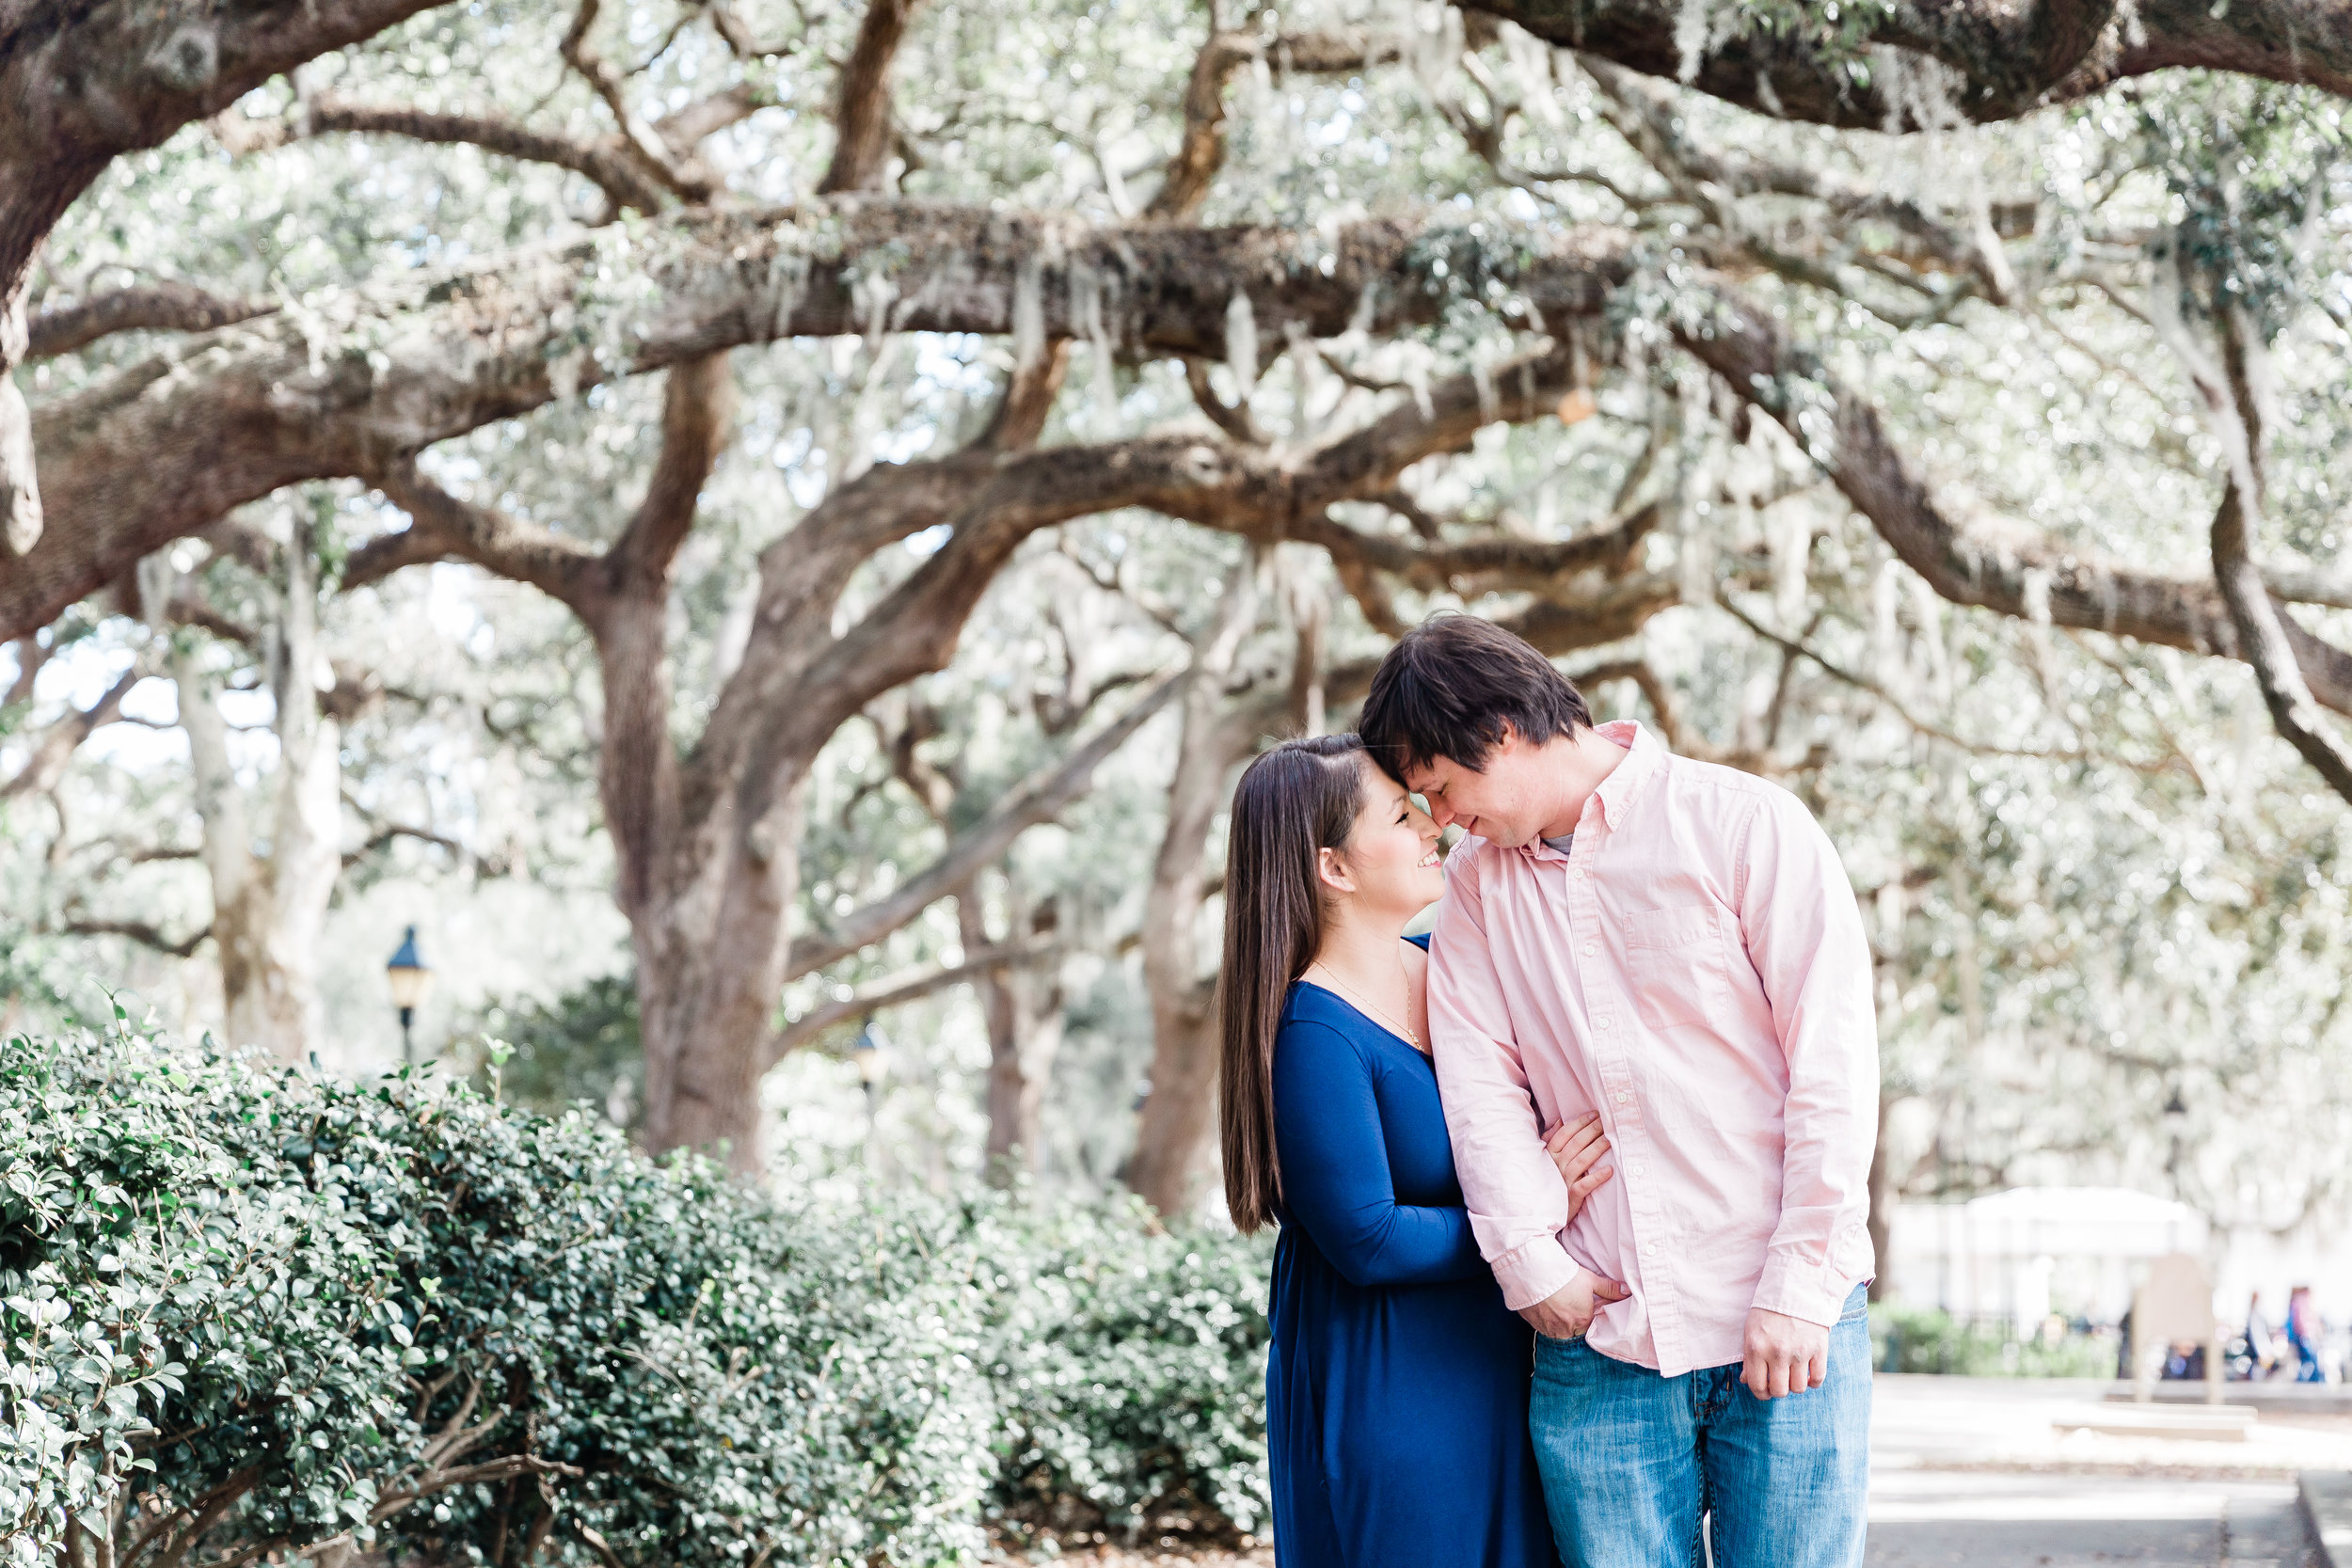 Valentines_mini_sessions_Savannah_Georgia_Photographer_Southern_Lens_Photography_Michelle_Weill_Family14.jpg